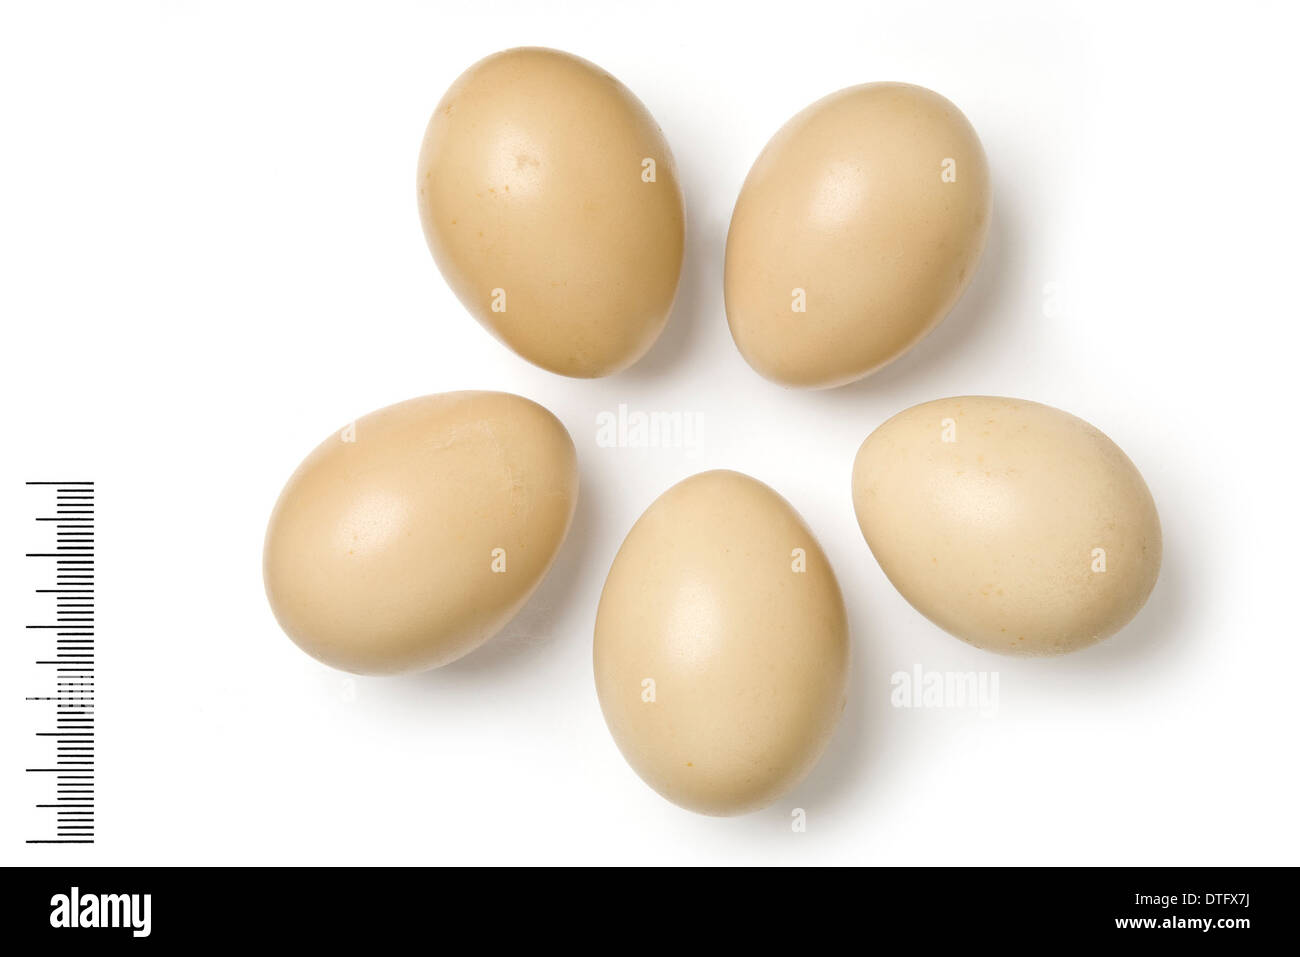 Syrmaticus reevesil, reeve's pheasant eggs - Stock Image